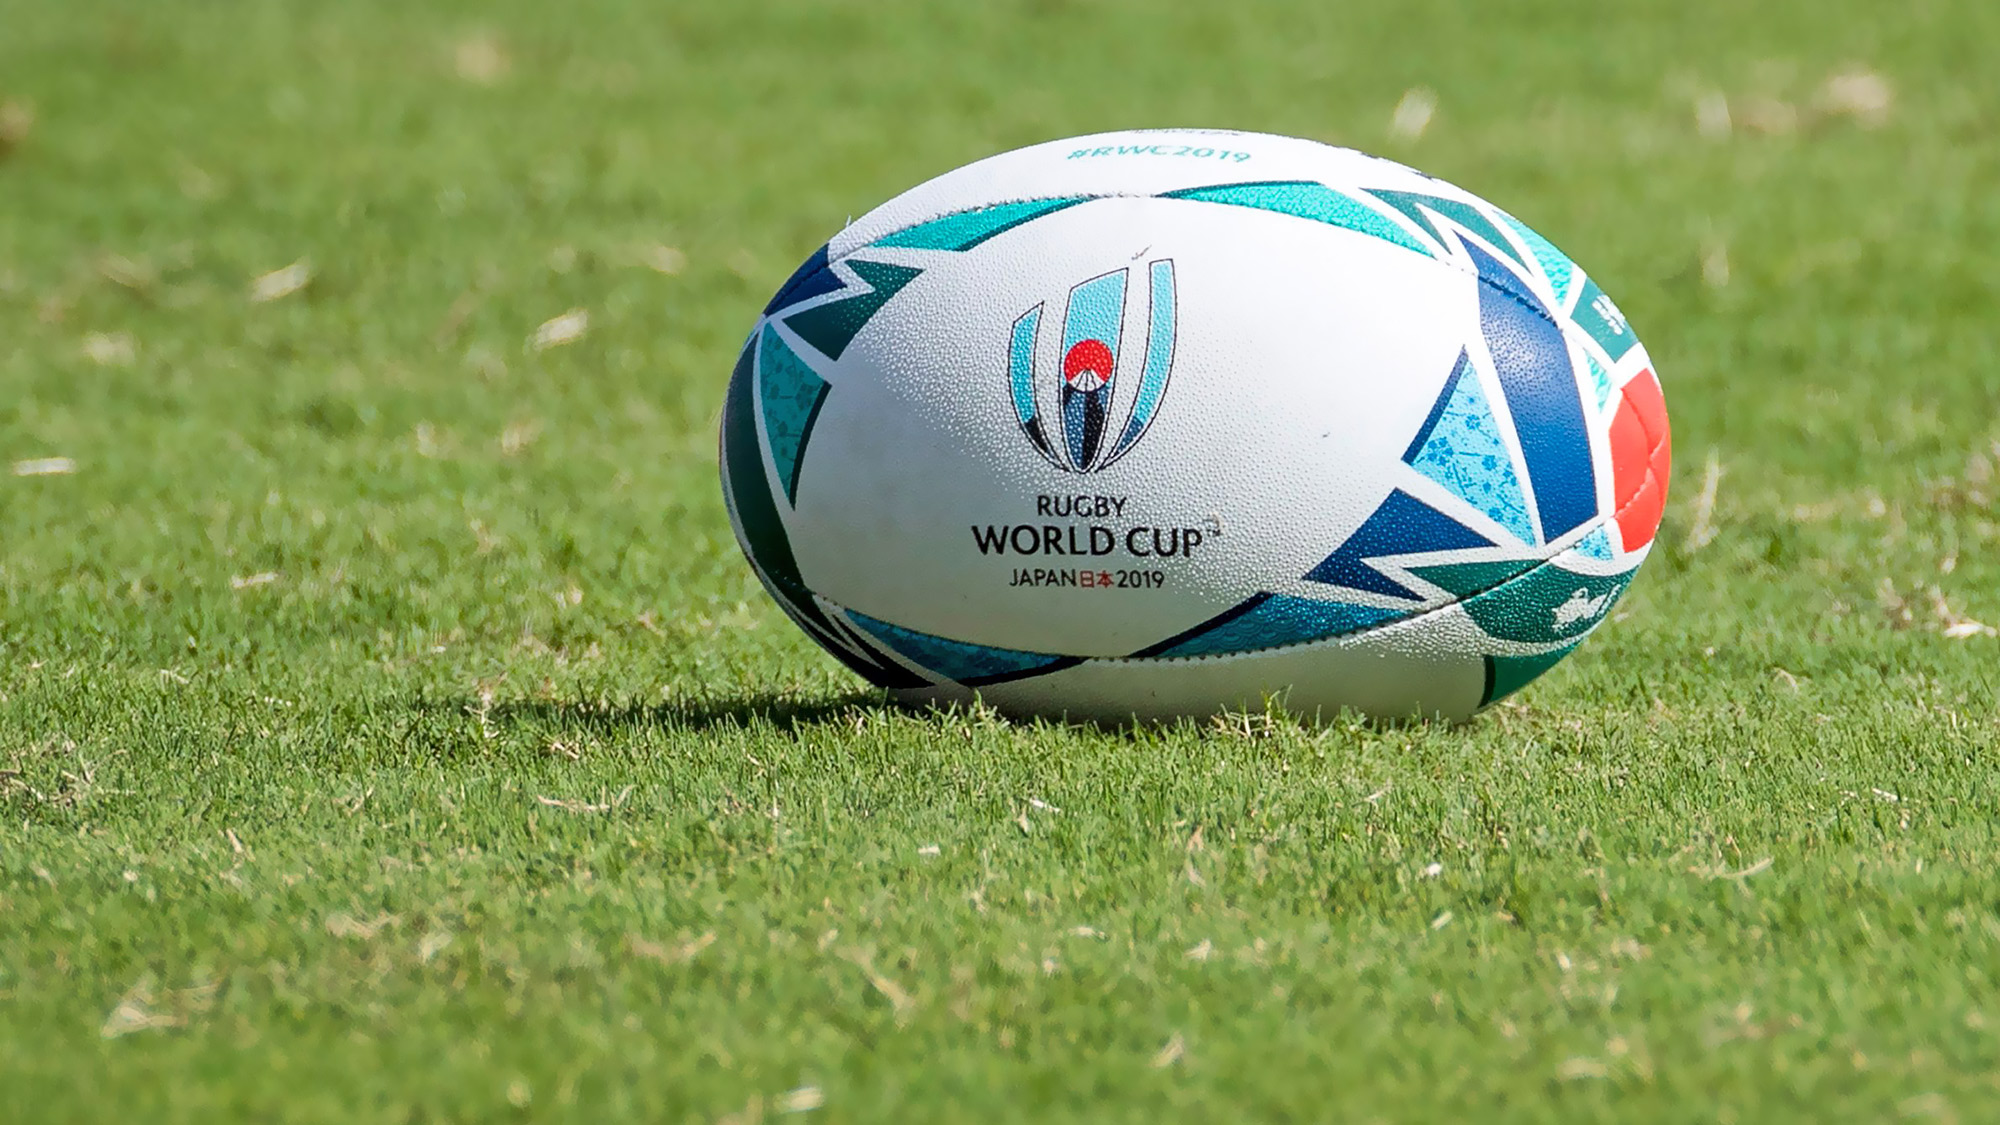 Watch The Rugby World Cup At Tŷ Pawb